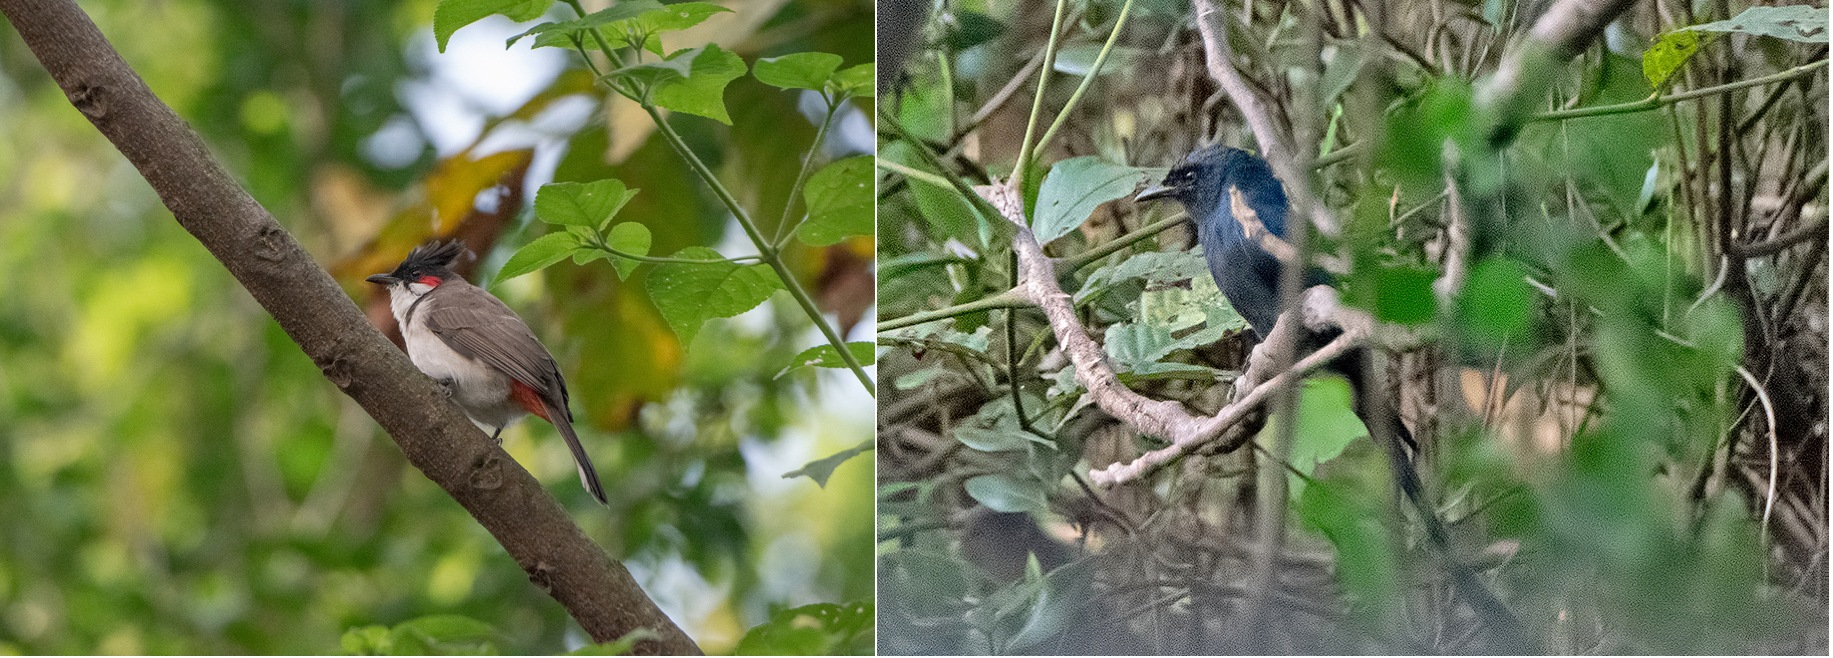 Children delight in observing red-whiskered bulbuls (left) for their appearance and melodious singing. The black drongo or kotwal, is favoured by birders for its defensive strategies. It's also the reason species like orioles, flycatchers, babblers, and sunbirds are often seen in close vicinity to drongos.